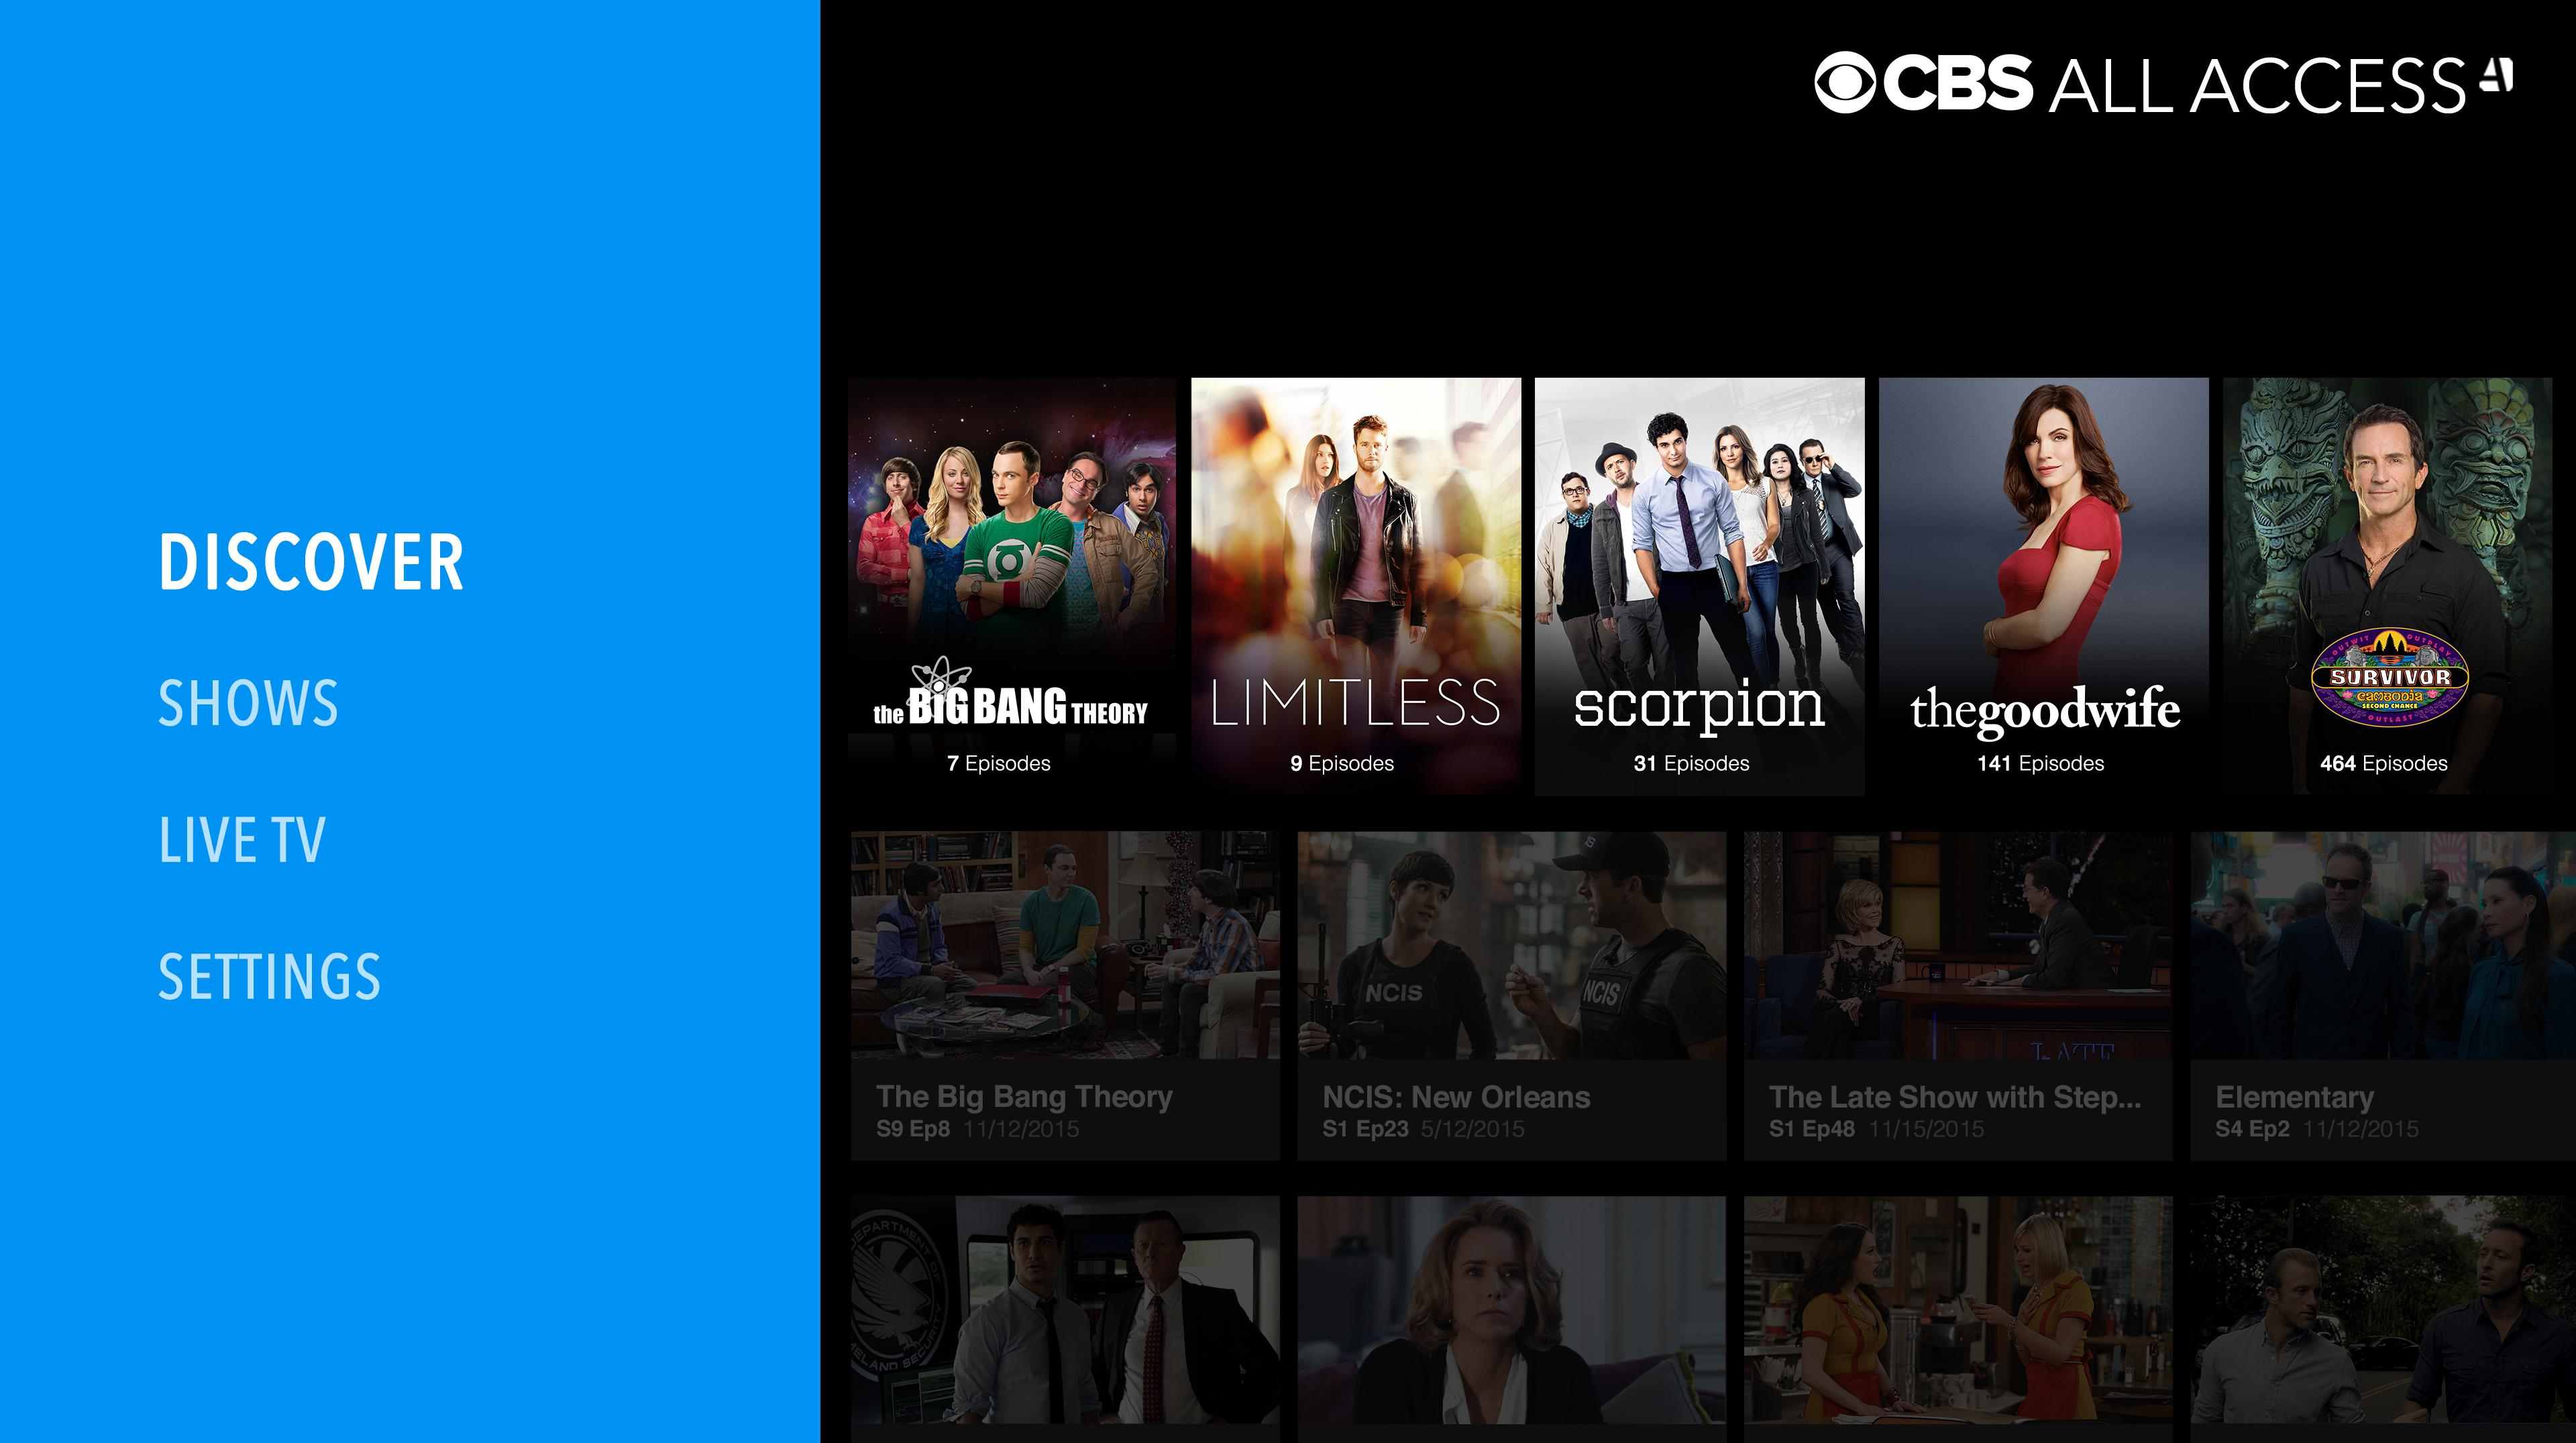 Cbs All Access App Updated With Support For Continuous Play